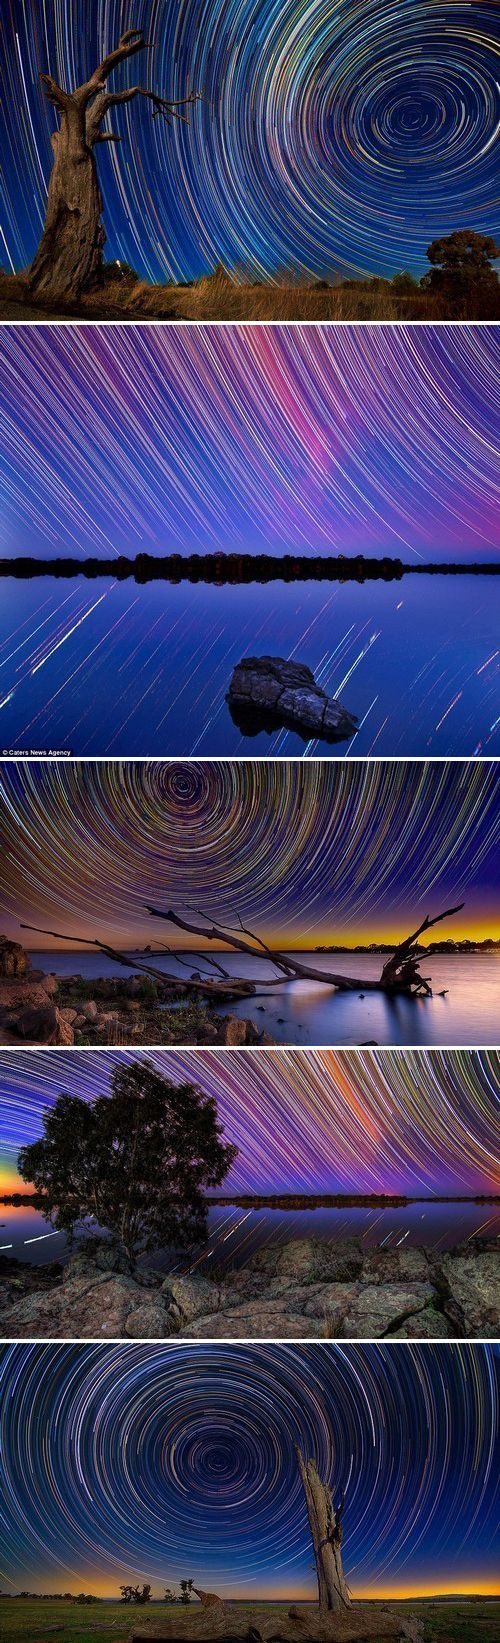 Extremely long exposure: Photographer endures 15-hour shoots in the wintry Australian outback to snare stunning images of star trails in the night sky